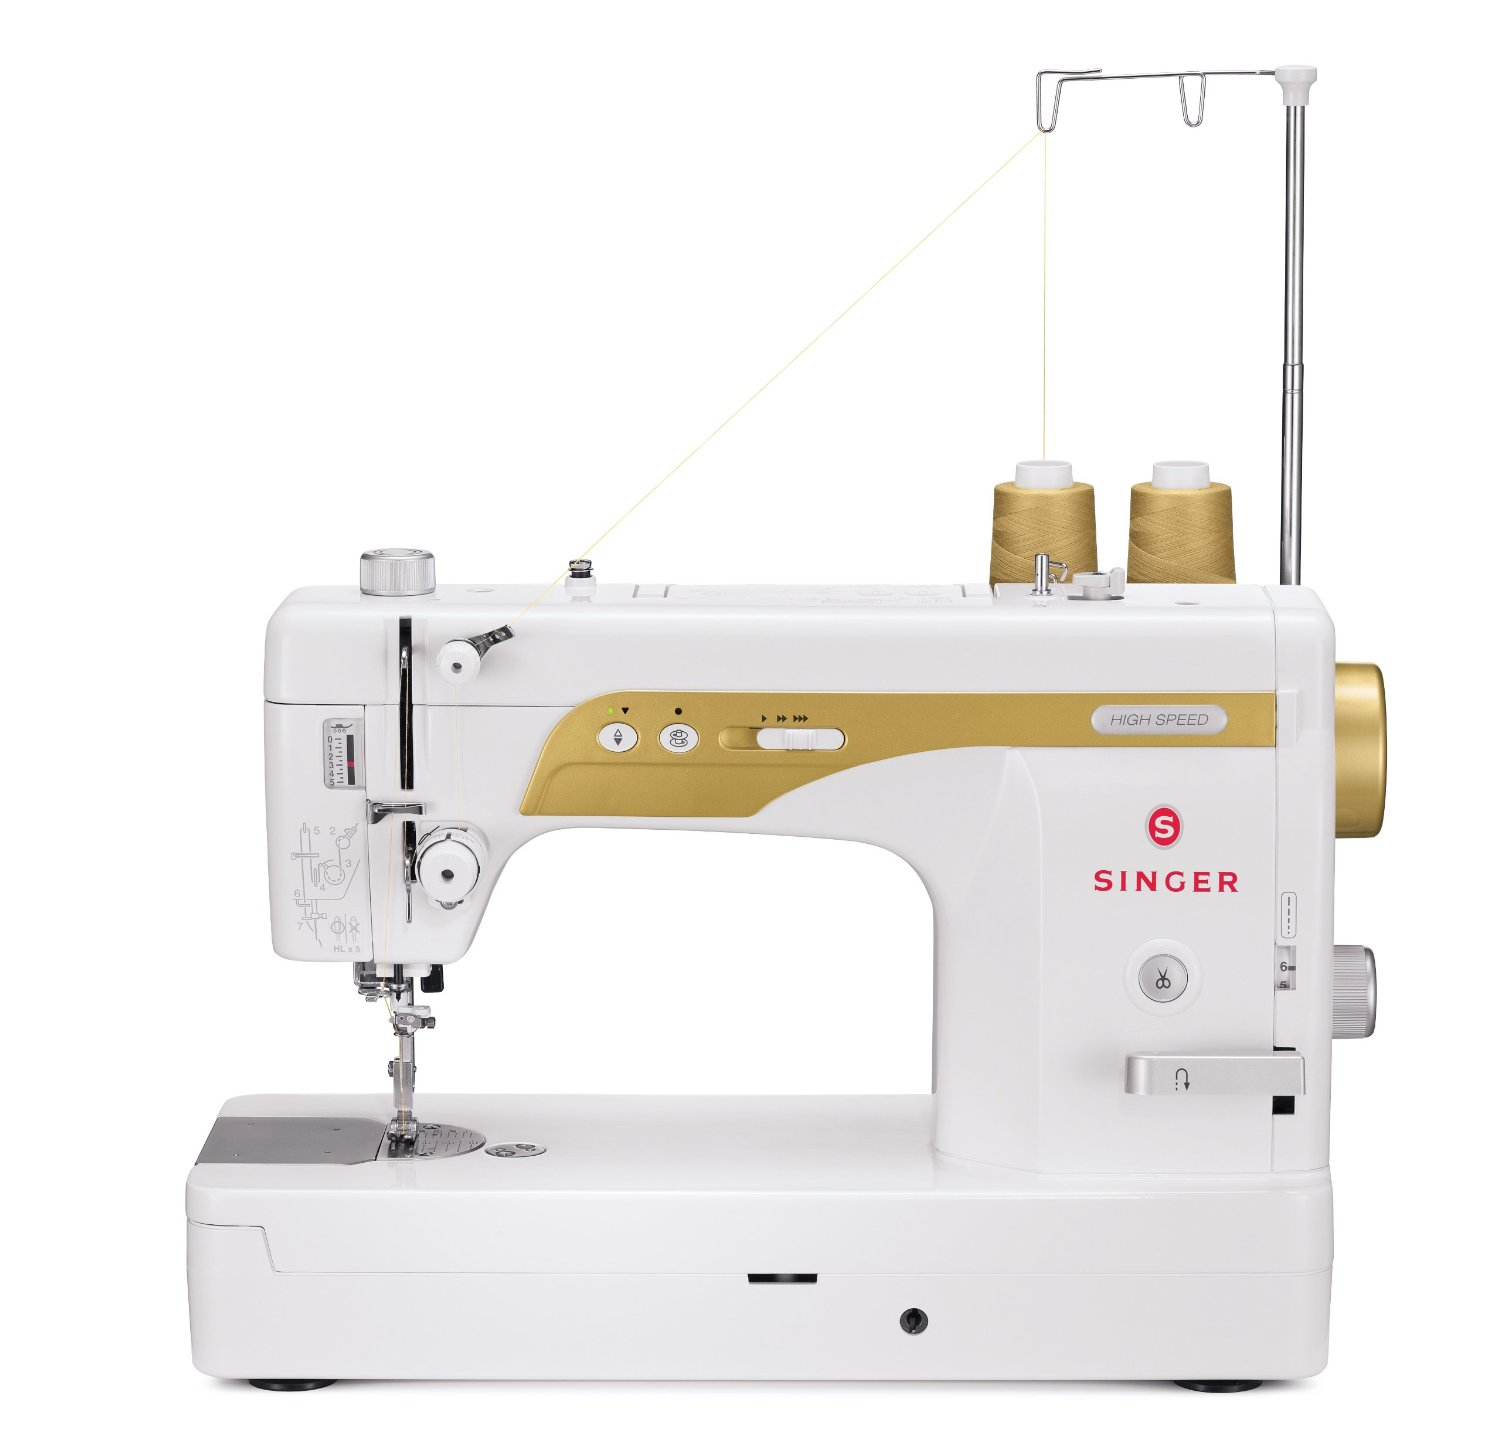 sewing machine reviews 2014